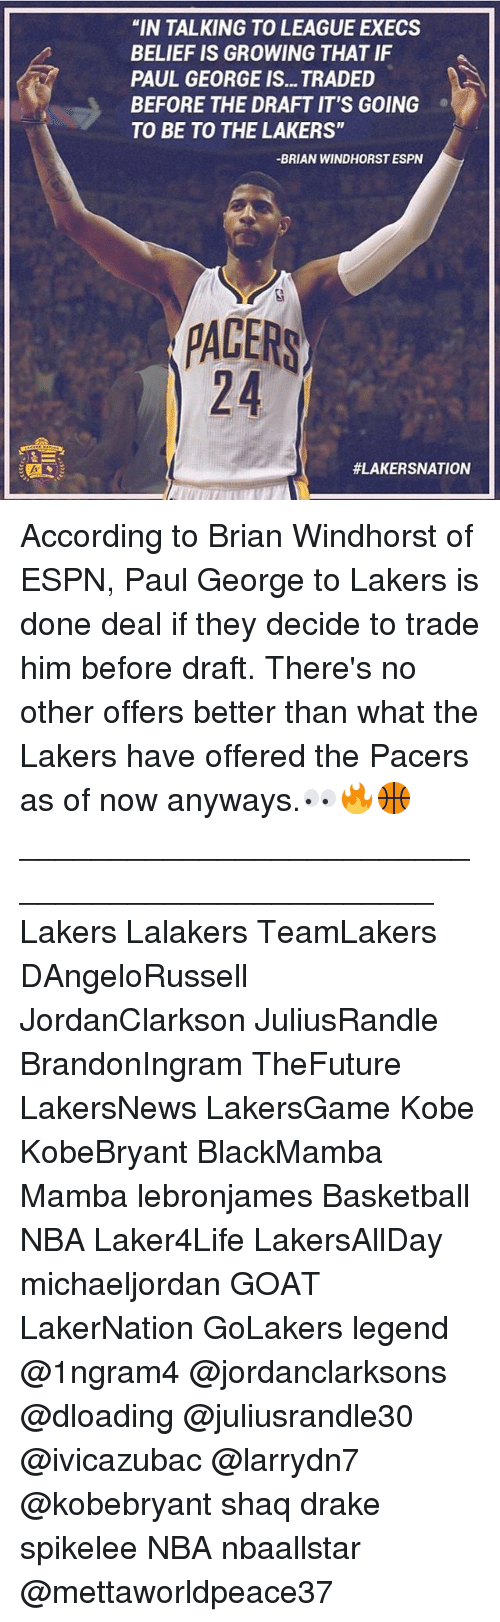 """Basketball, Drake, and Espn: """"IN TALKING TO LEAGUE EXECS  BELIEF IS GROWING THAT IF  PAUL GEORGE IS... TRADED  BEFORE THE DRAFT IT'S GOING  TO BE TO THE LAKERS""""  -BRIAN WINDHORST ESPN  PACERS  According to Brian Windhorst of ESPN, Paul George to Lakers is done deal if they decide to trade him before draft. There's no other offers better than what the Lakers have offered the Pacers as of now anyways.👀🔥🏀 ________________________________________________ Lakers Lalakers TeamLakers DAngeloRussell JordanClarkson JuliusRandle BrandonIngram TheFuture LakersNews LakersGame Kobe KobeBryant BlackMamba Mamba lebronjames Basketball NBA Laker4Life LakersAllDay michaeljordan GOAT LakerNation GoLakers legend @1ngram4 @jordanclarksons @dloading @juliusrandle30 @ivicazubac @larrydn7 @kobebryant shaq drake spikelee NBA nbaallstar @mettaworldpeace37"""